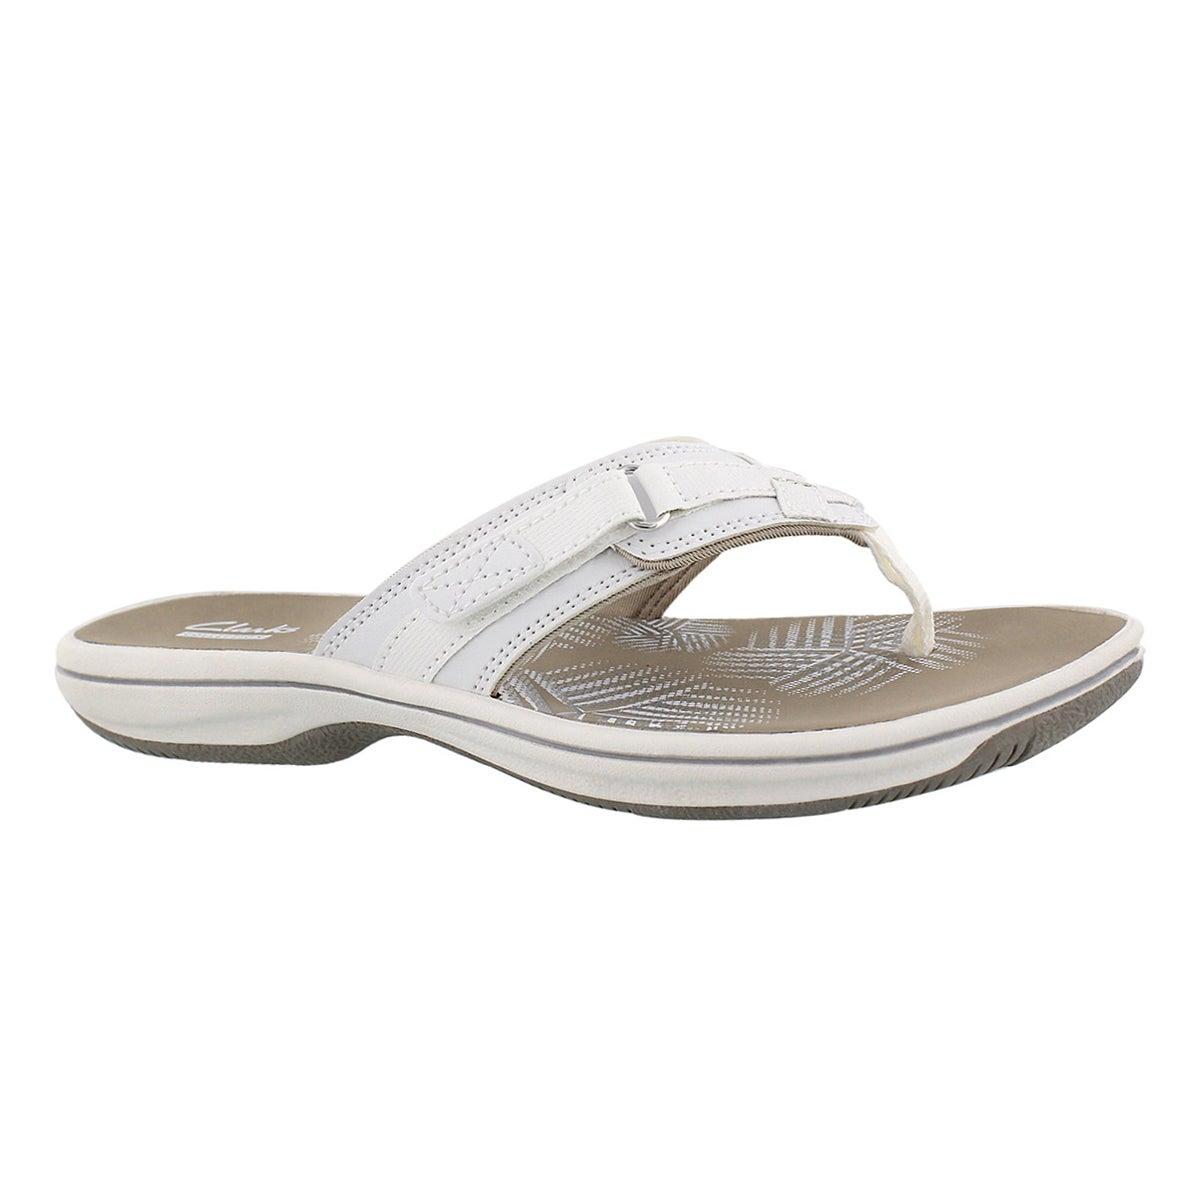 Women's BREEZE SEA white thong sandals